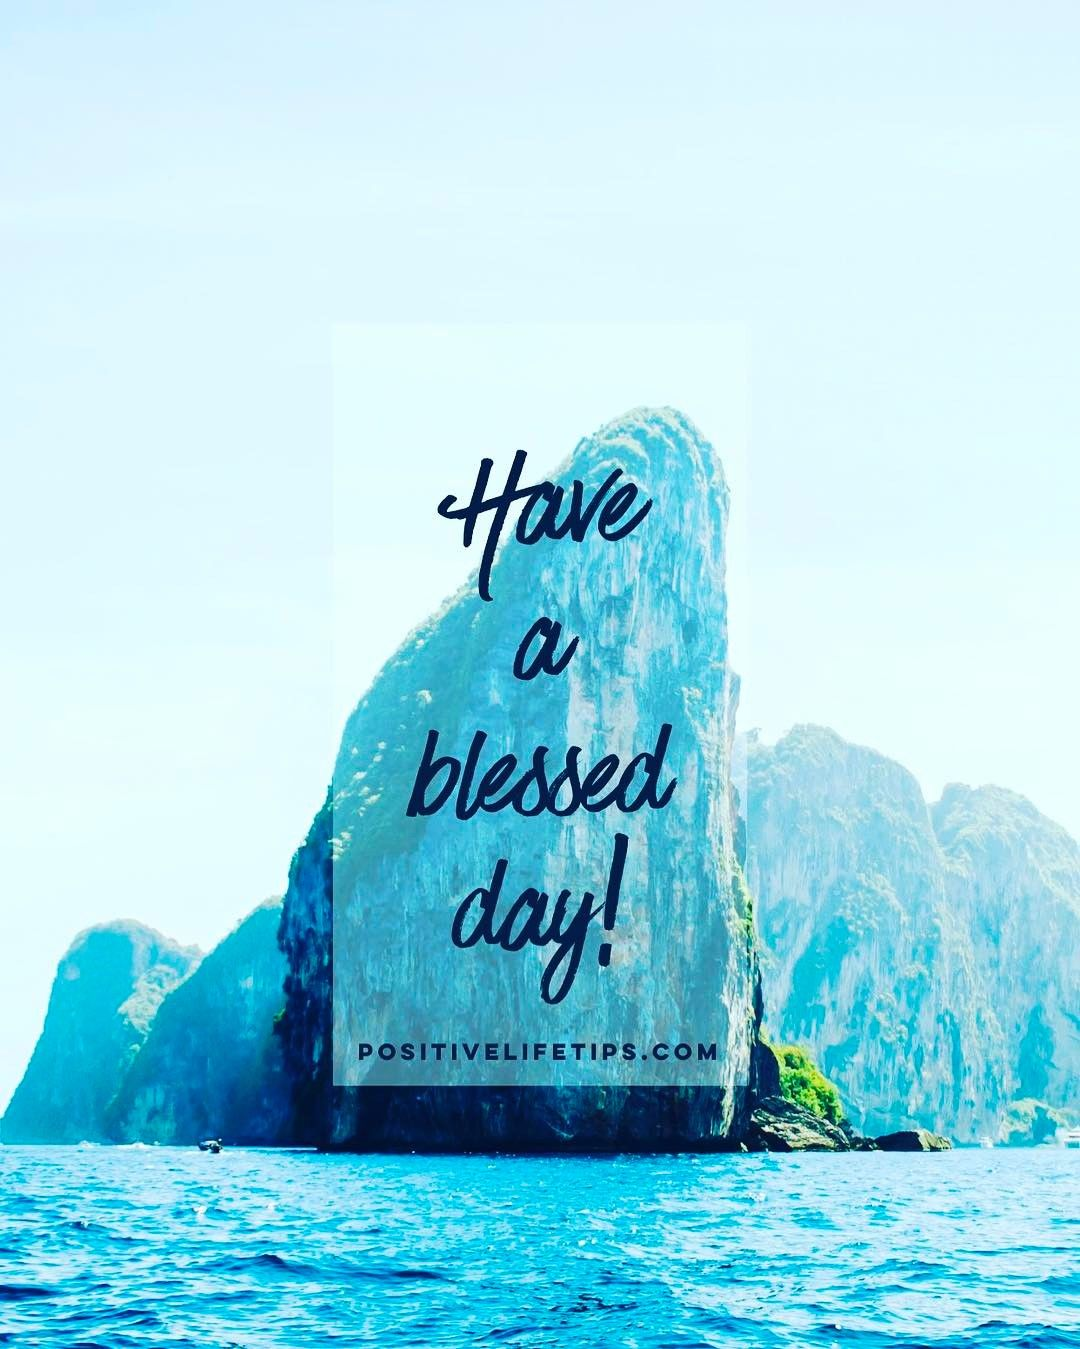 Big blessing are coming!